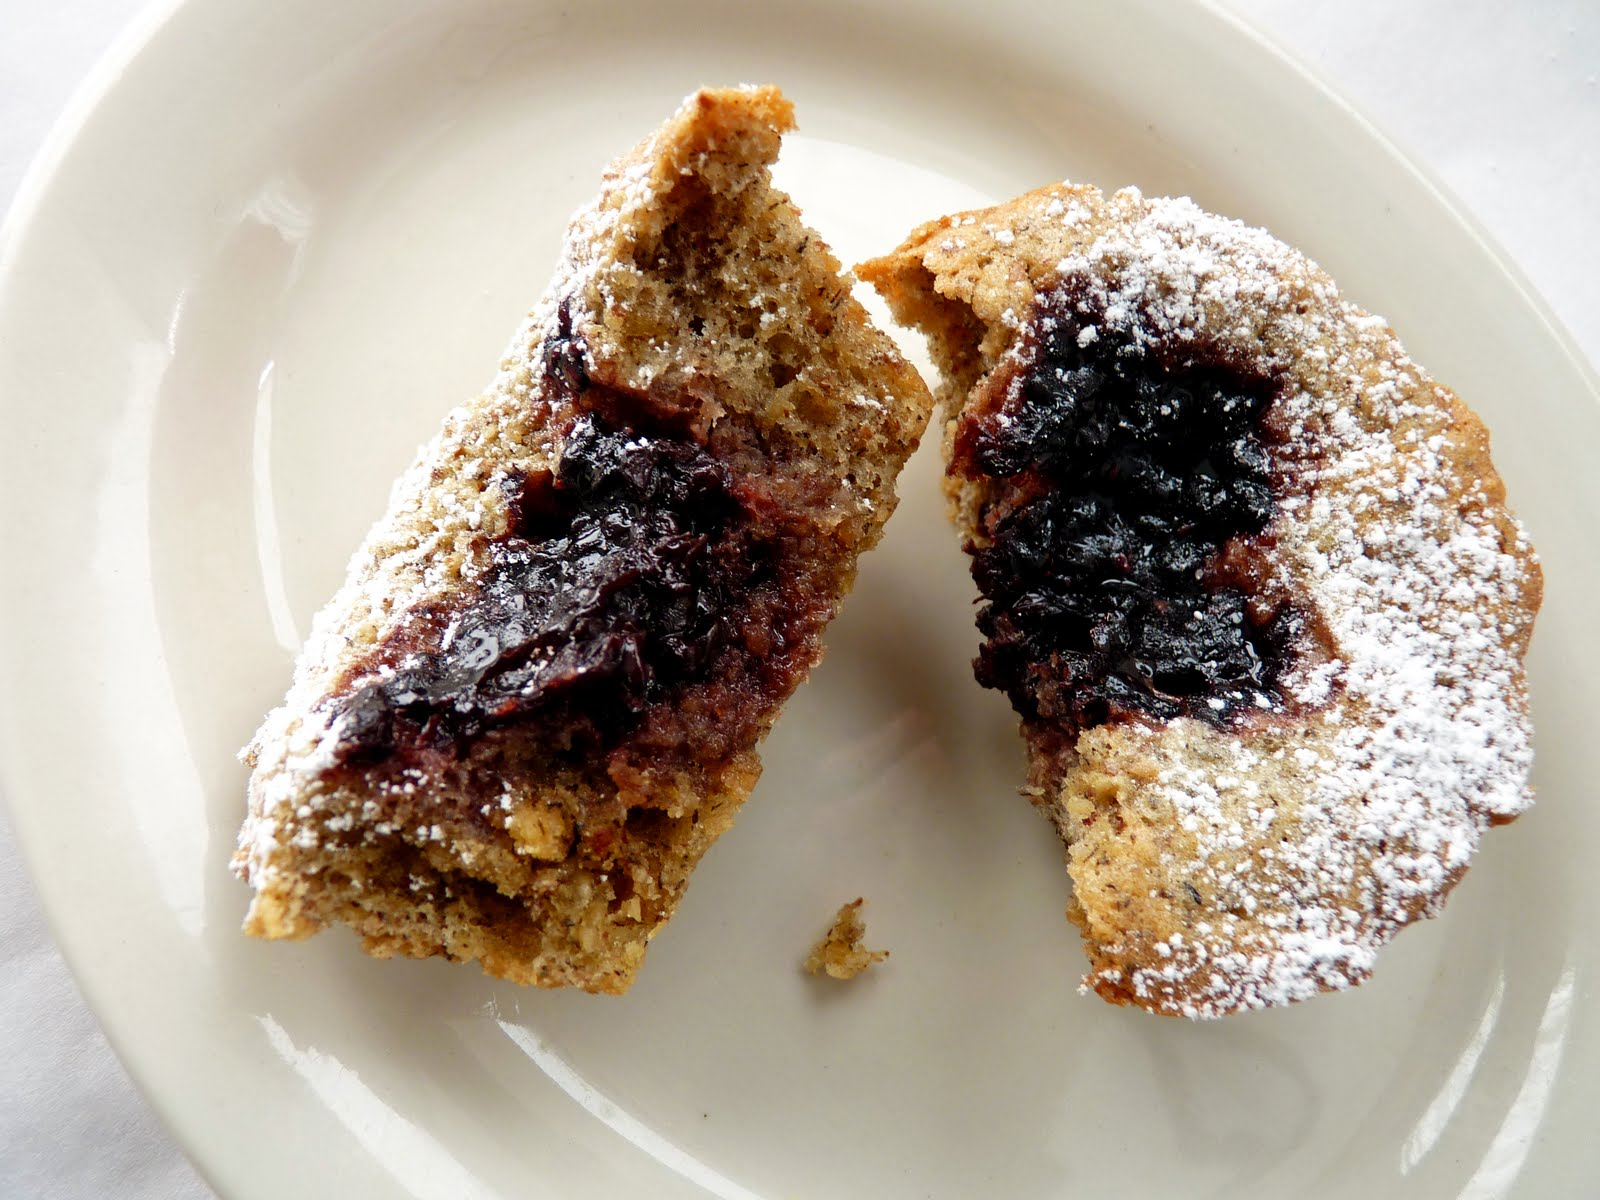 Can You Make Cakes With Buckwheat Flour